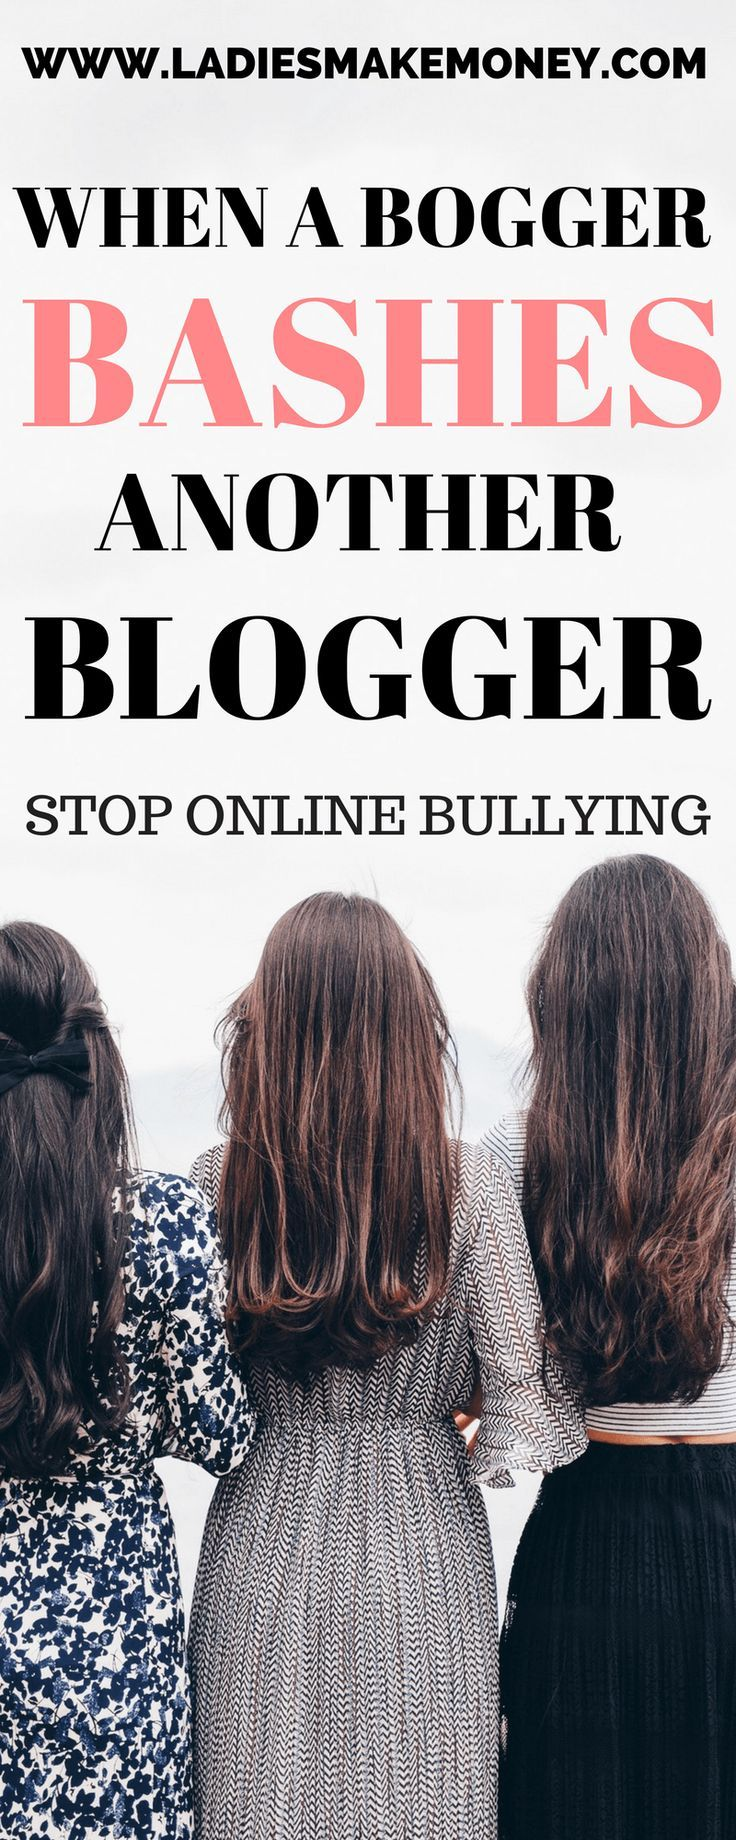 Stop bashing other bloggers, stop online bullying, stop cyber bullying. How can we prevent cyber bullying. stop cyber bullying articles stop cyber bullying poster stop cyber bullying day  #cyberbullying